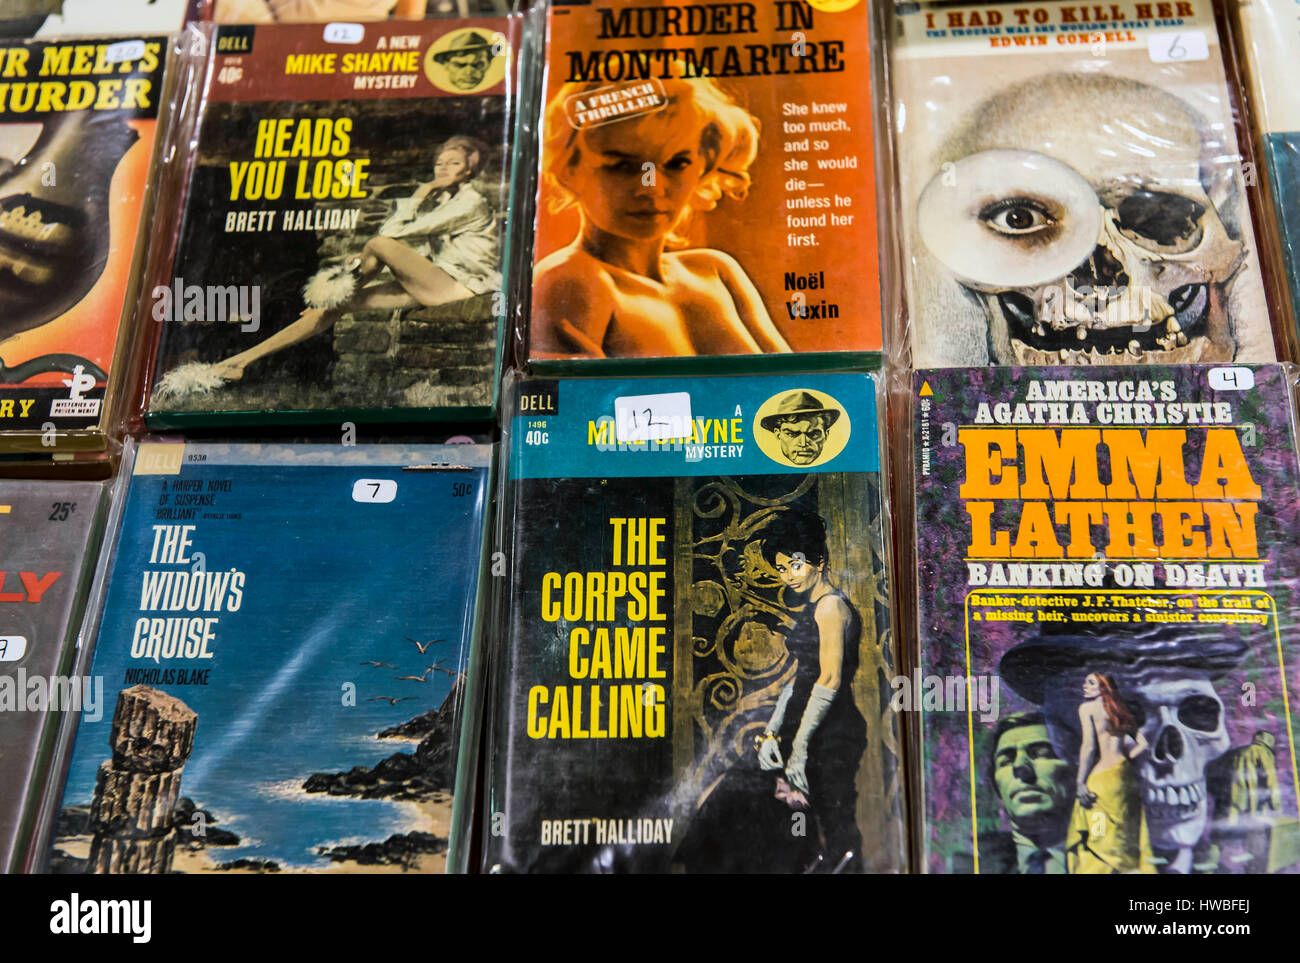 Glendale, California, USA. 19th Mar, 2017. The 38th Annual Los Angeles Vintage Paperback Collectors Show, the largest - Stock Image